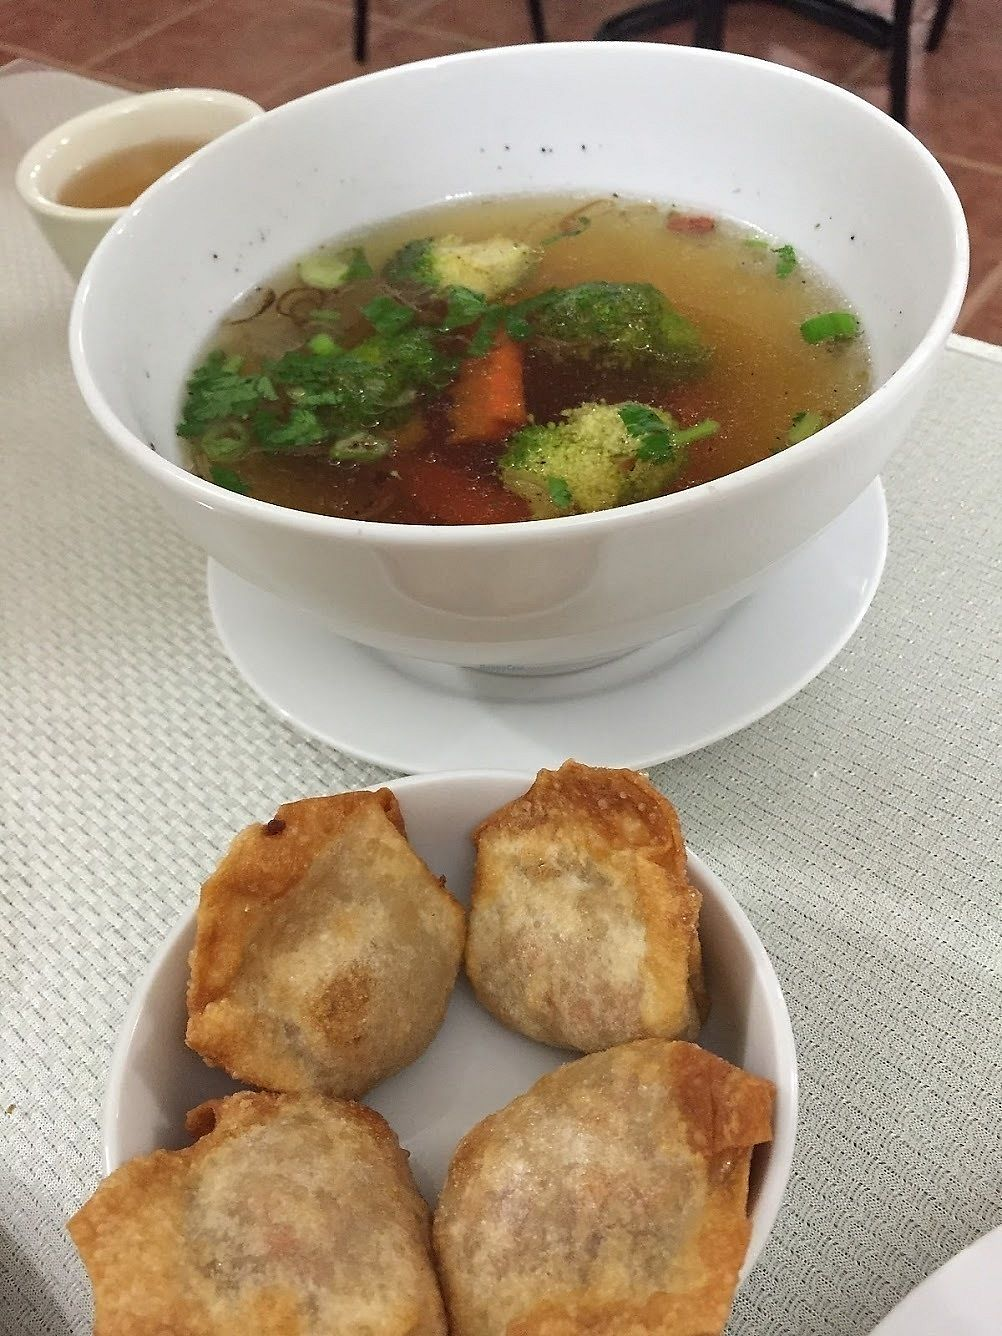 """Photo of Lotus Vegan Restaurant  by <a href=""""/members/profile/Jamie9705"""">Jamie9705</a> <br/>The best wonton soup ever <br/> September 14, 2017  - <a href='/contact/abuse/image/31533/304268'>Report</a>"""